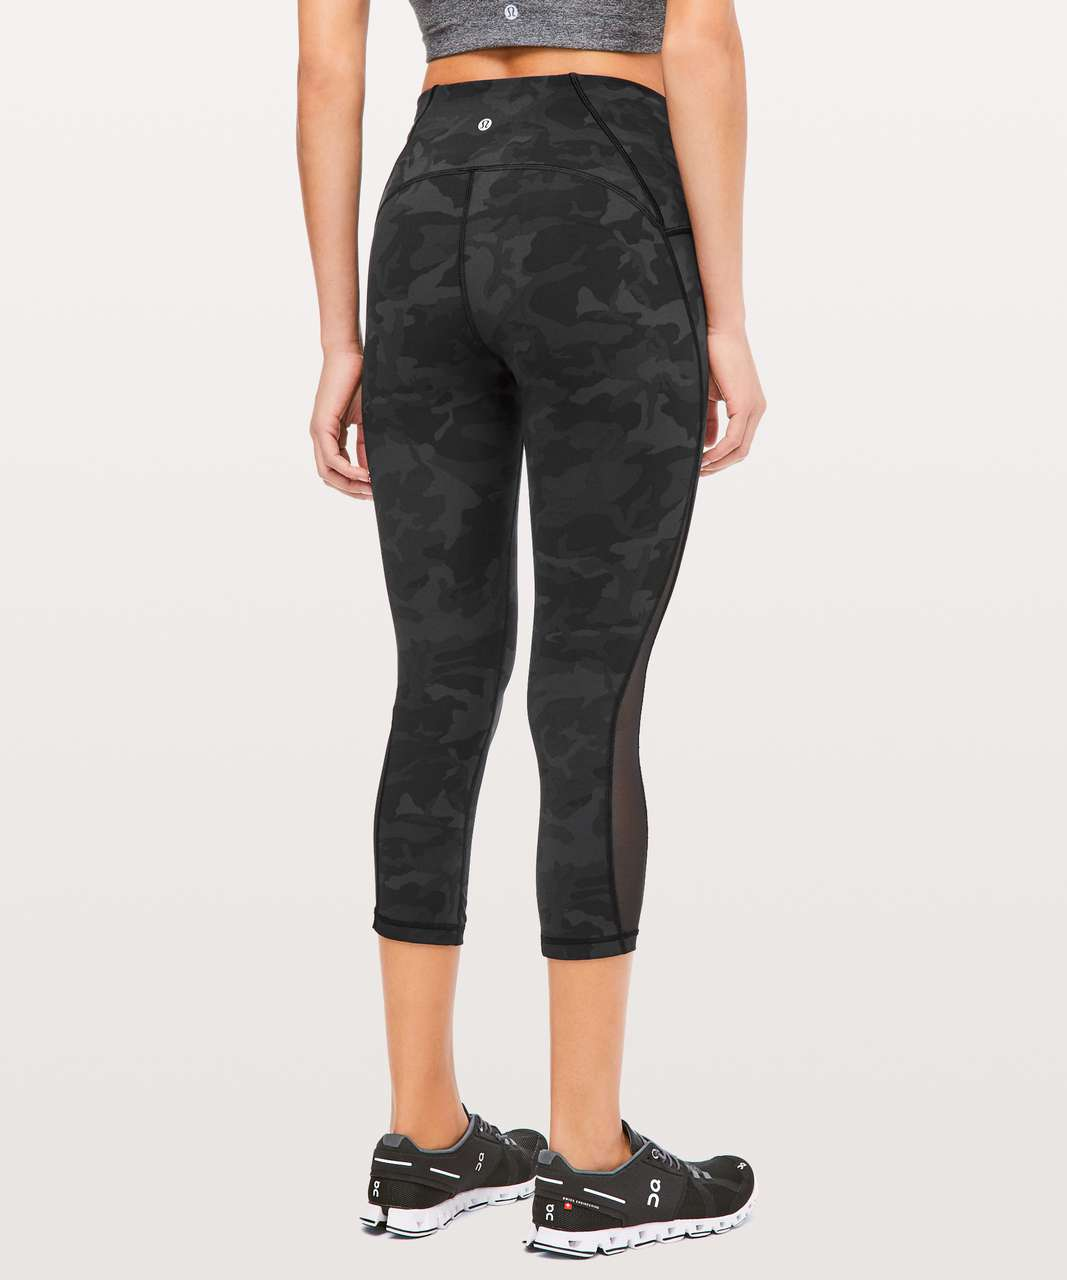 "Lululemon Train Times Crop *21"" - Incognito Camo Multi Grey / Black"